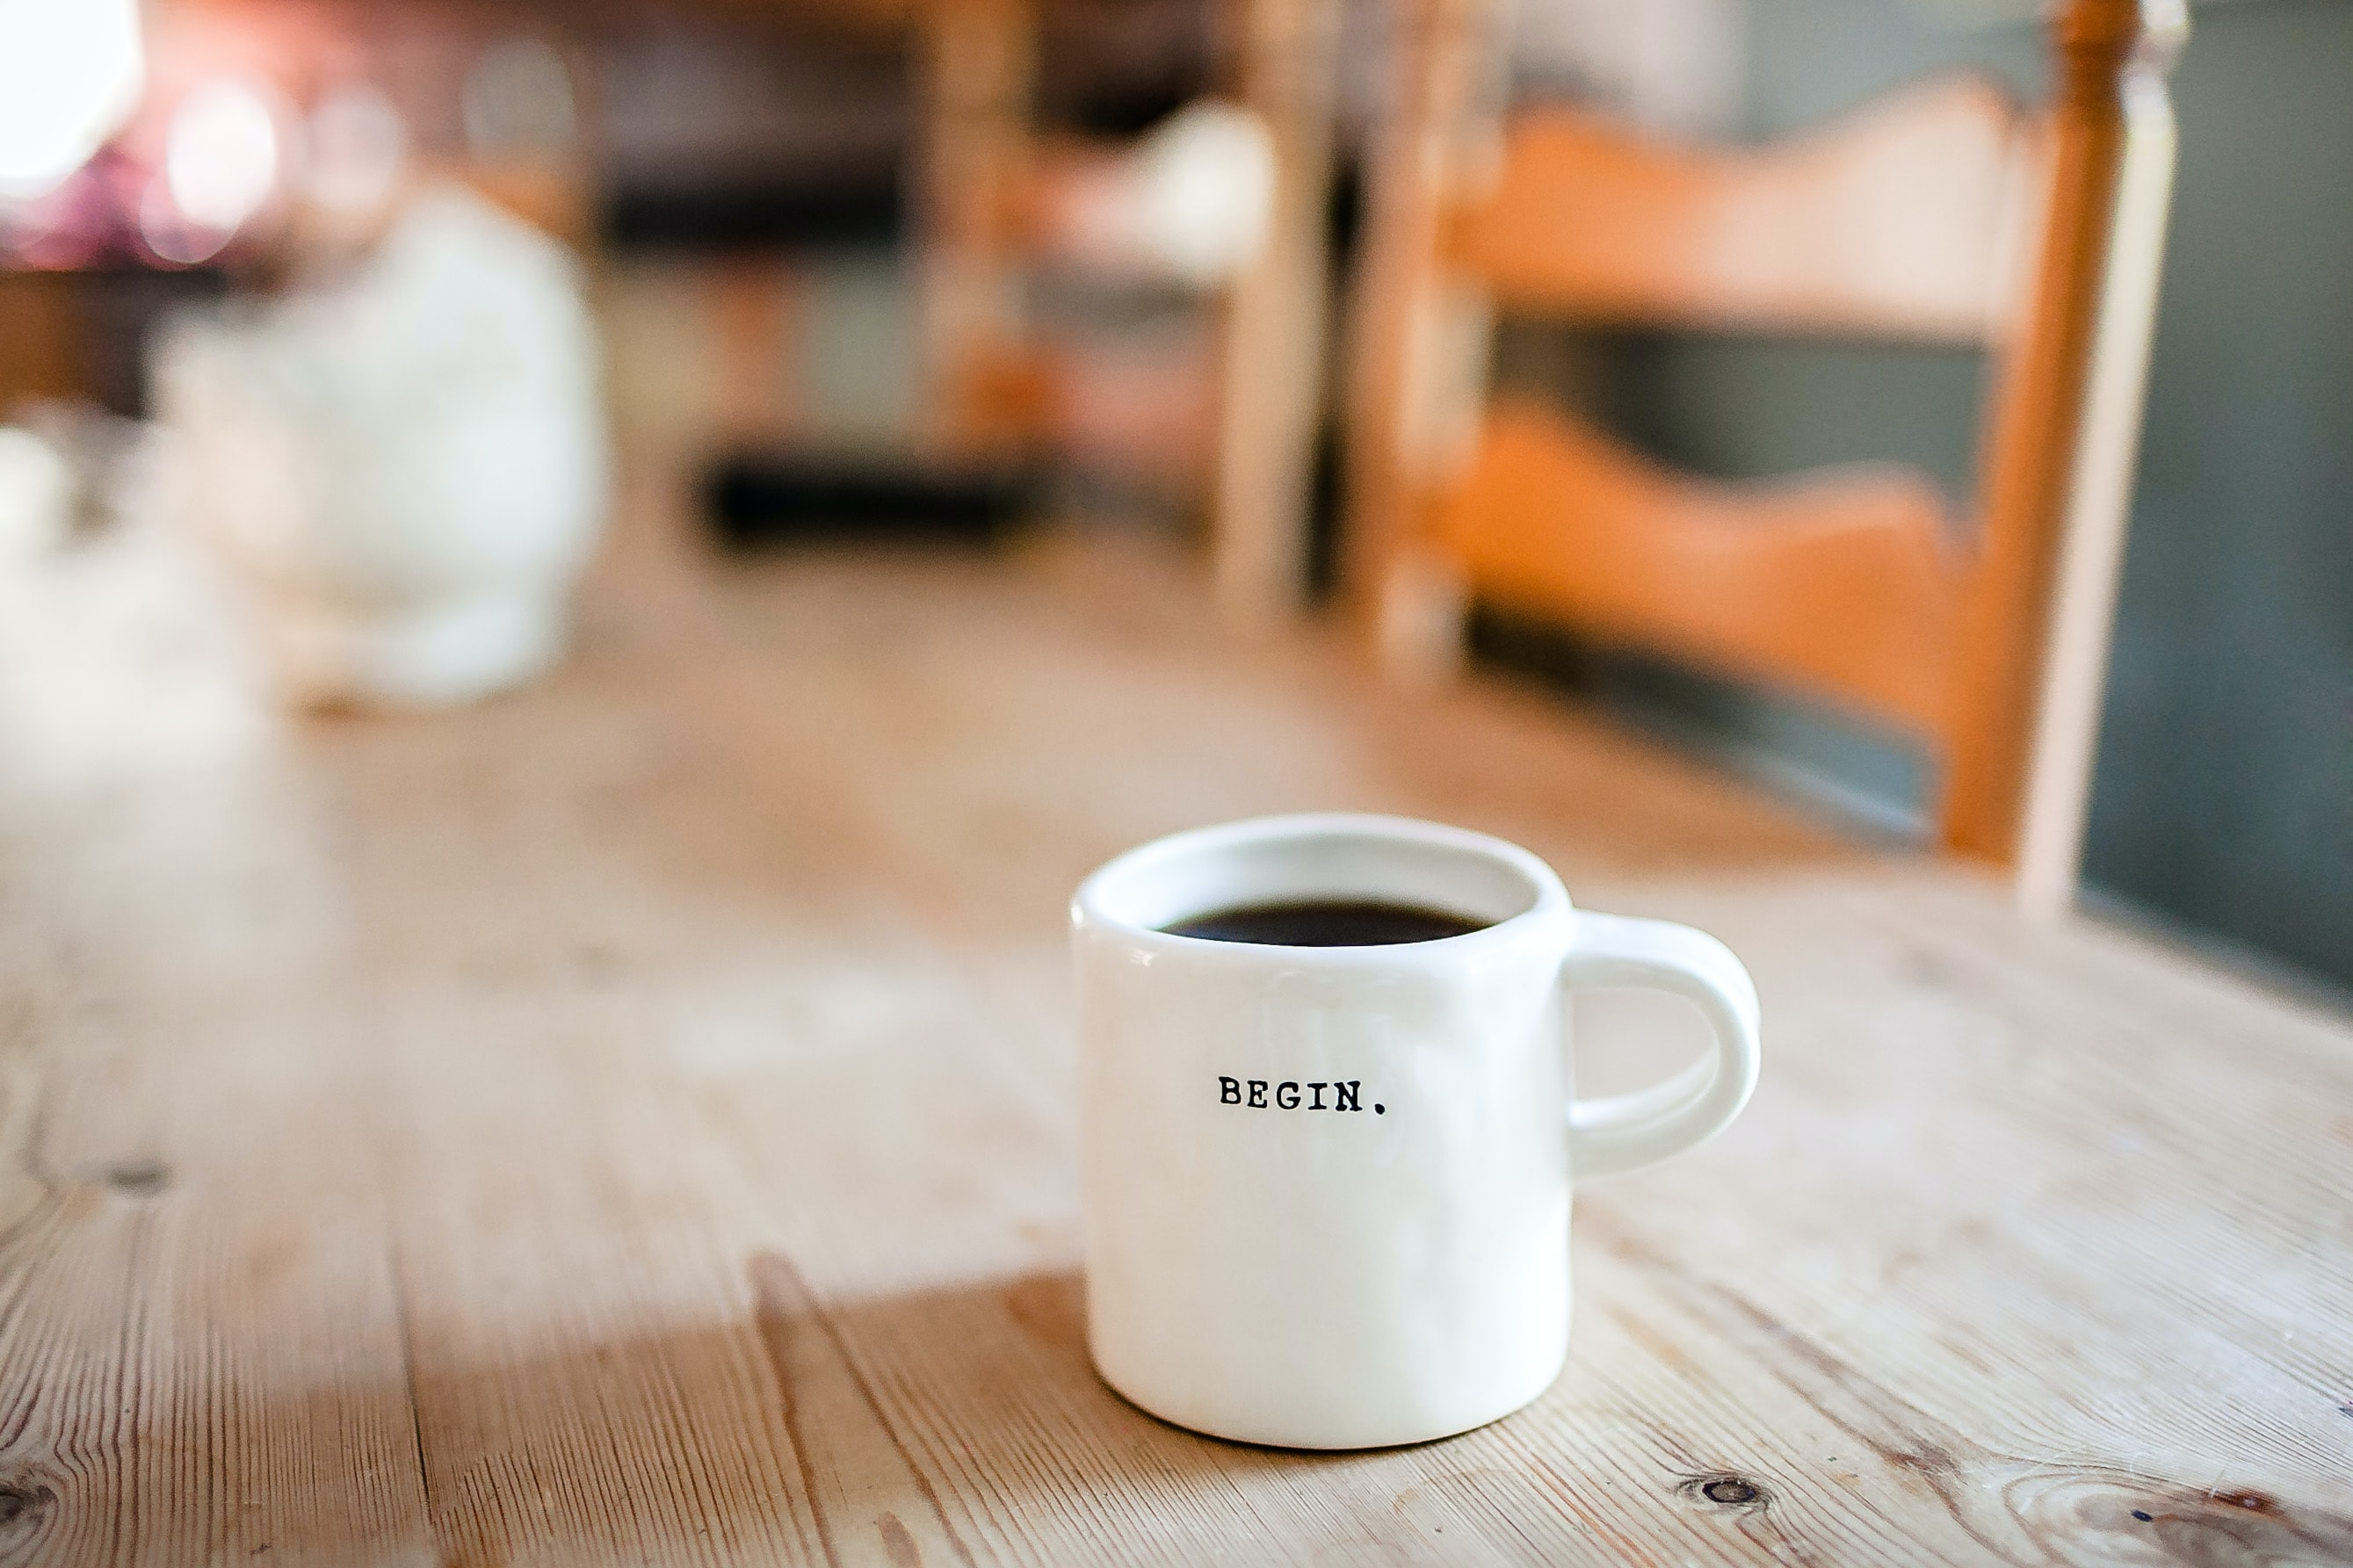 Coffee mug on table that says begin